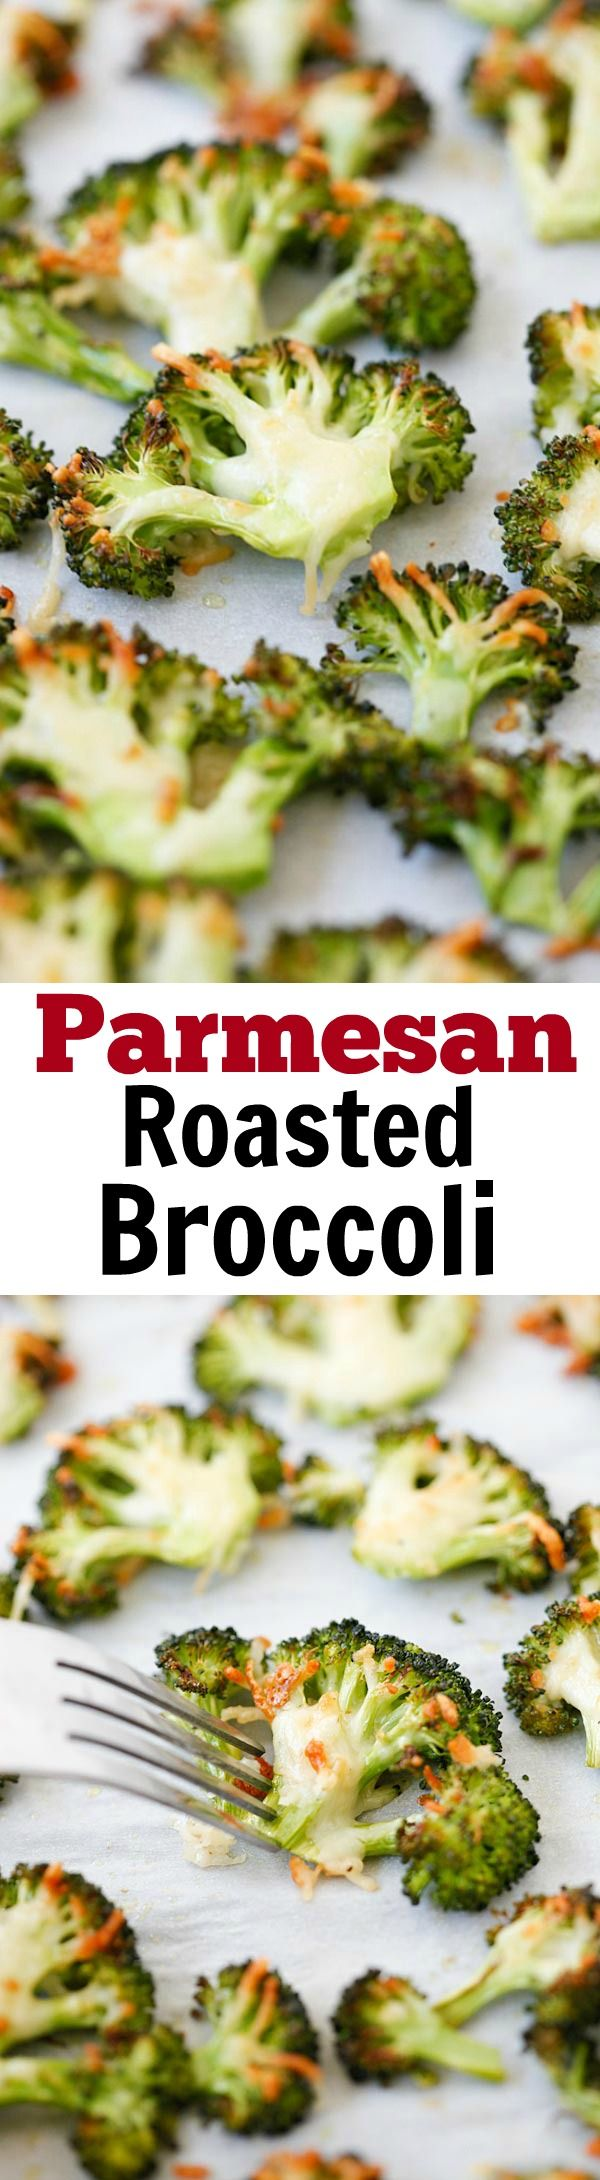 25+ best roasted broccoli recipe ideas on pinterest | parmesan